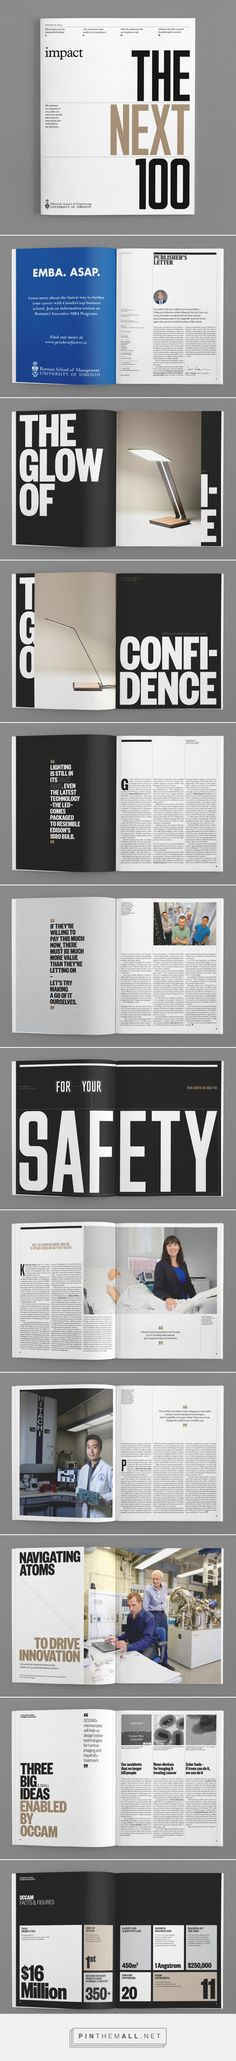 Impact Magazine, Issue 3: The Next 100 on Behance... - a grouped images picture - Pin Them All